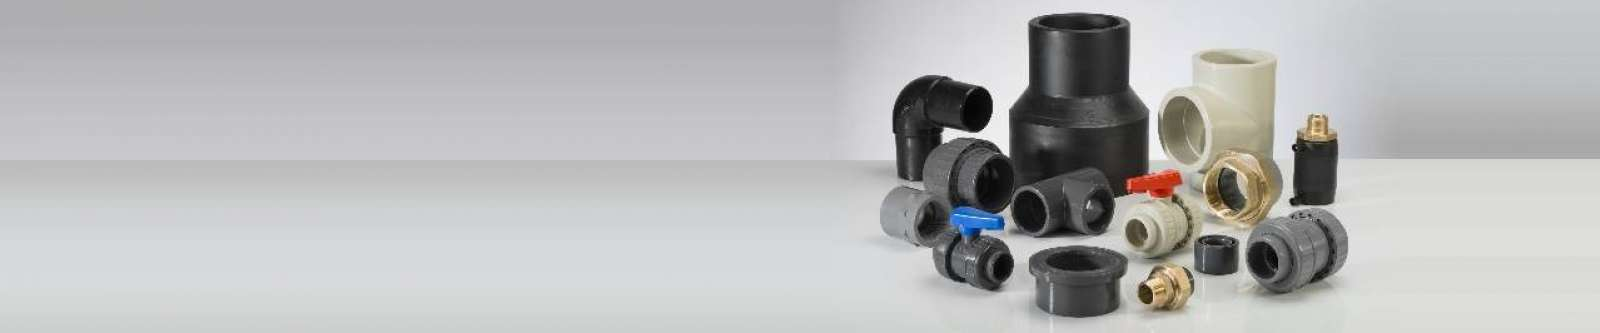 Supply Pipe Pressure Systems for commercial and public buildings